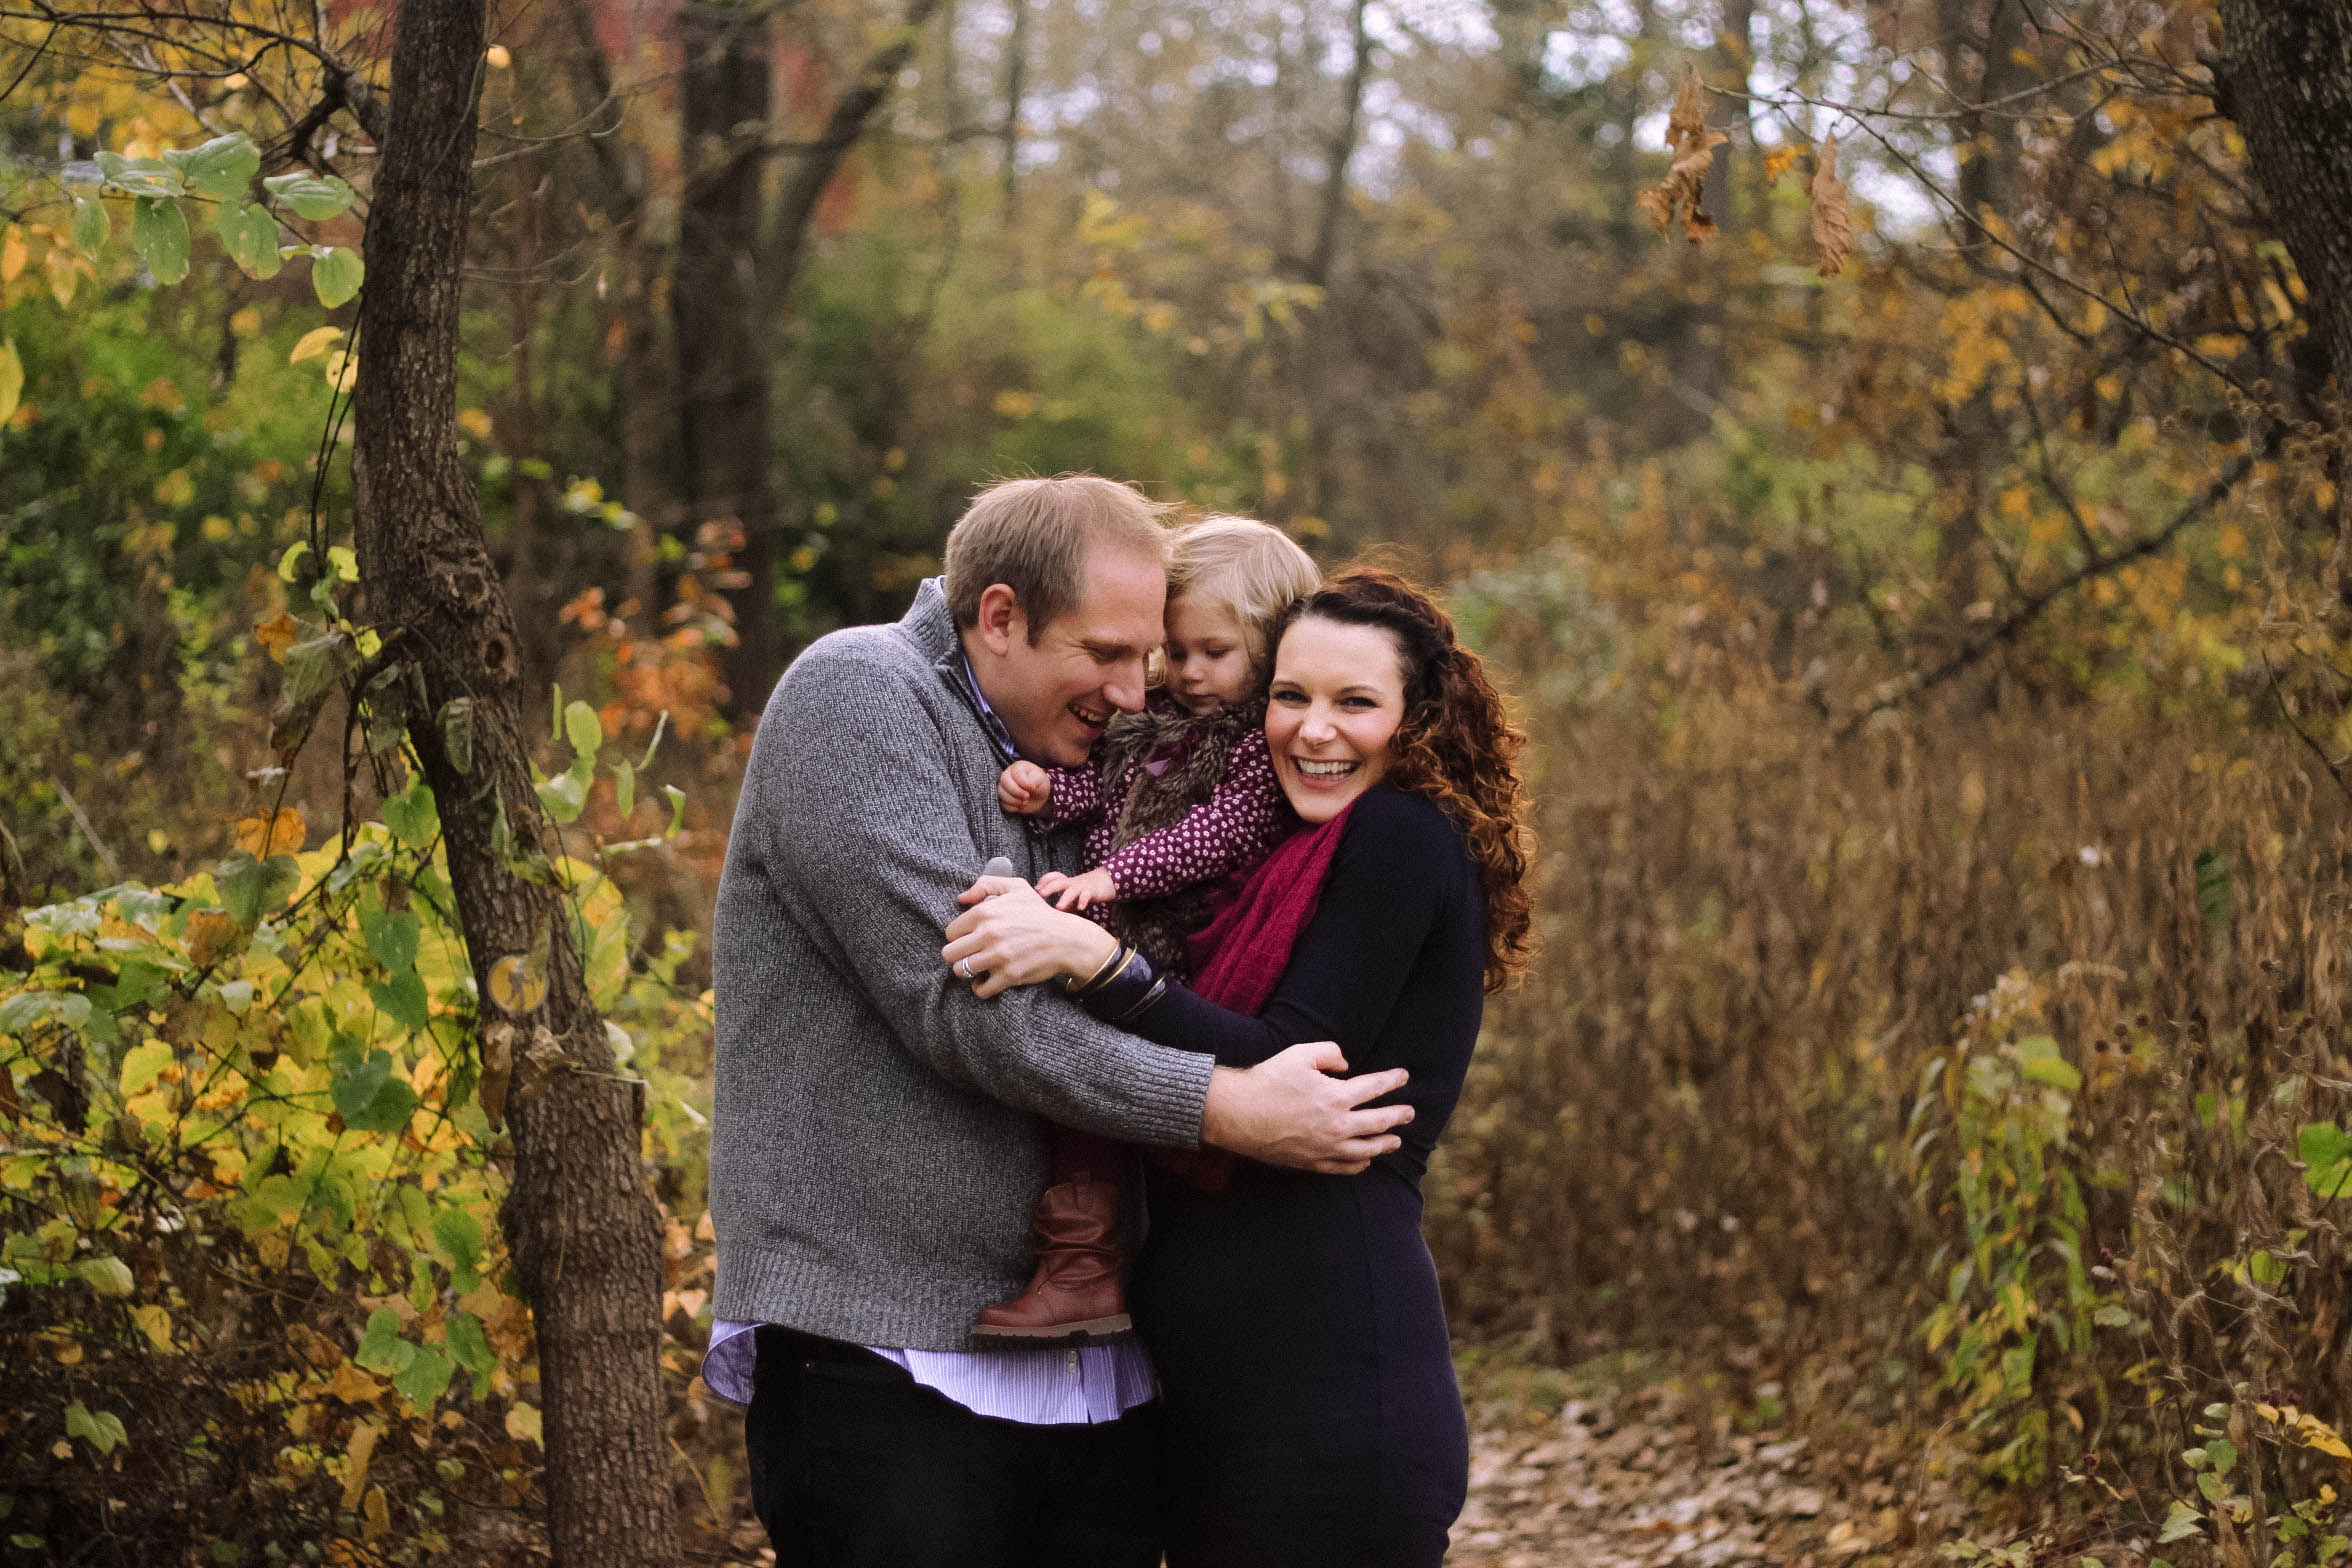 Autumn Family Mini Sessions | Hannahill Photography | Kansas City, MO | Destigter Family